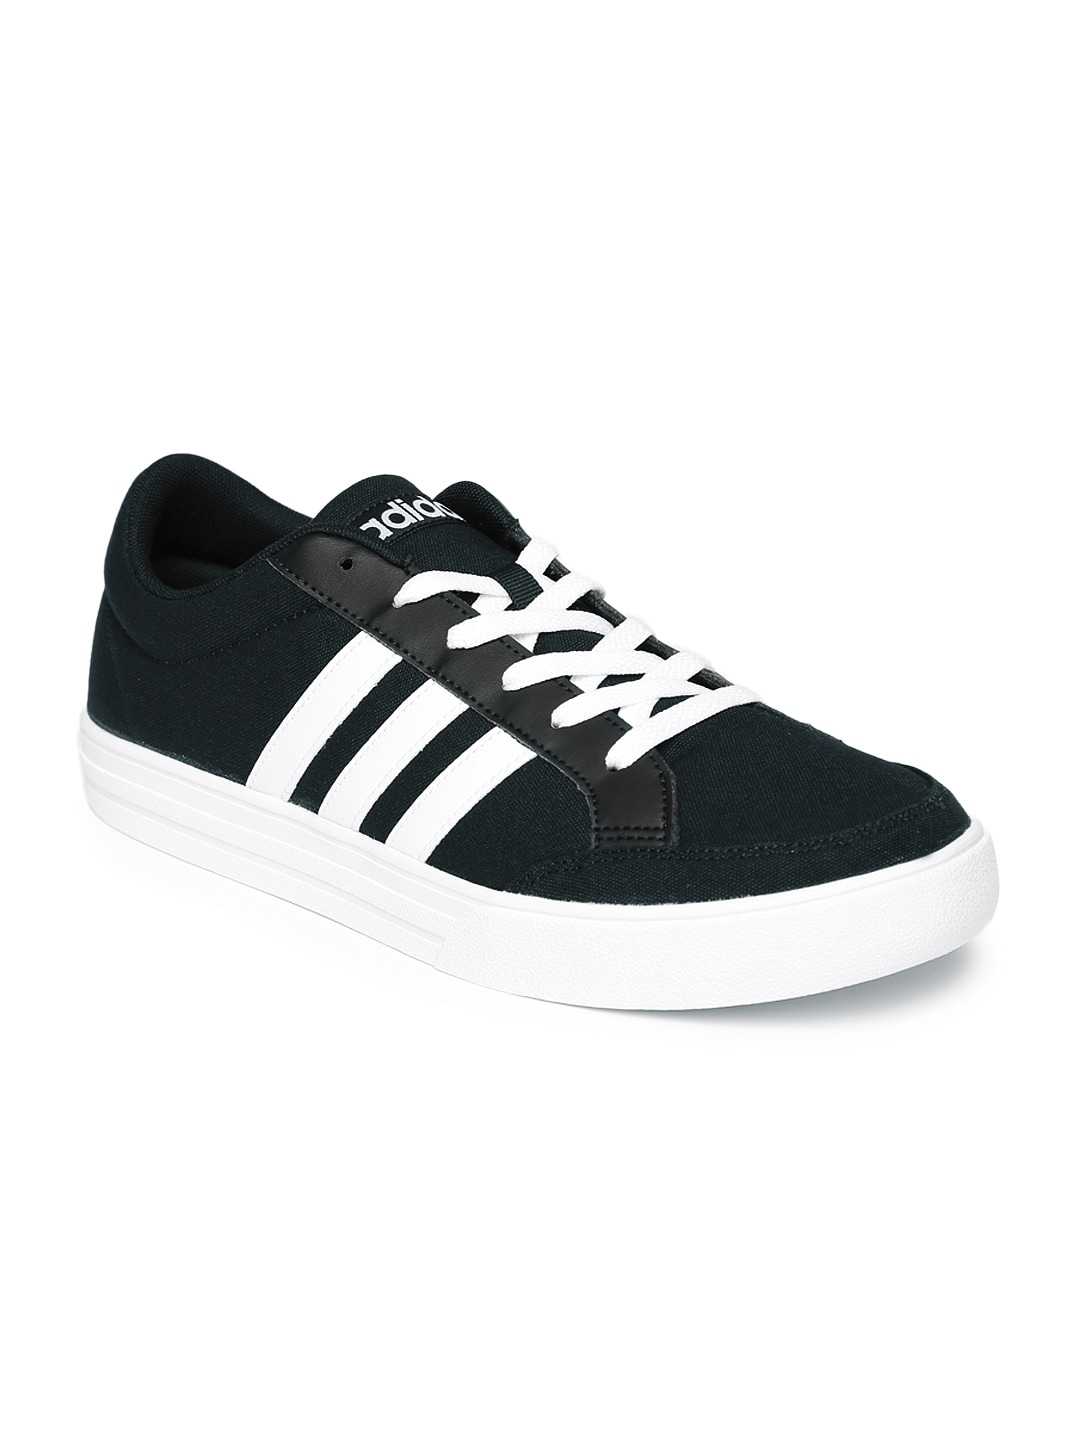 new style fbe7d 69d42 Adidas Neo Casual Shoes - Buy Adidas Neo Casual Shoes Online